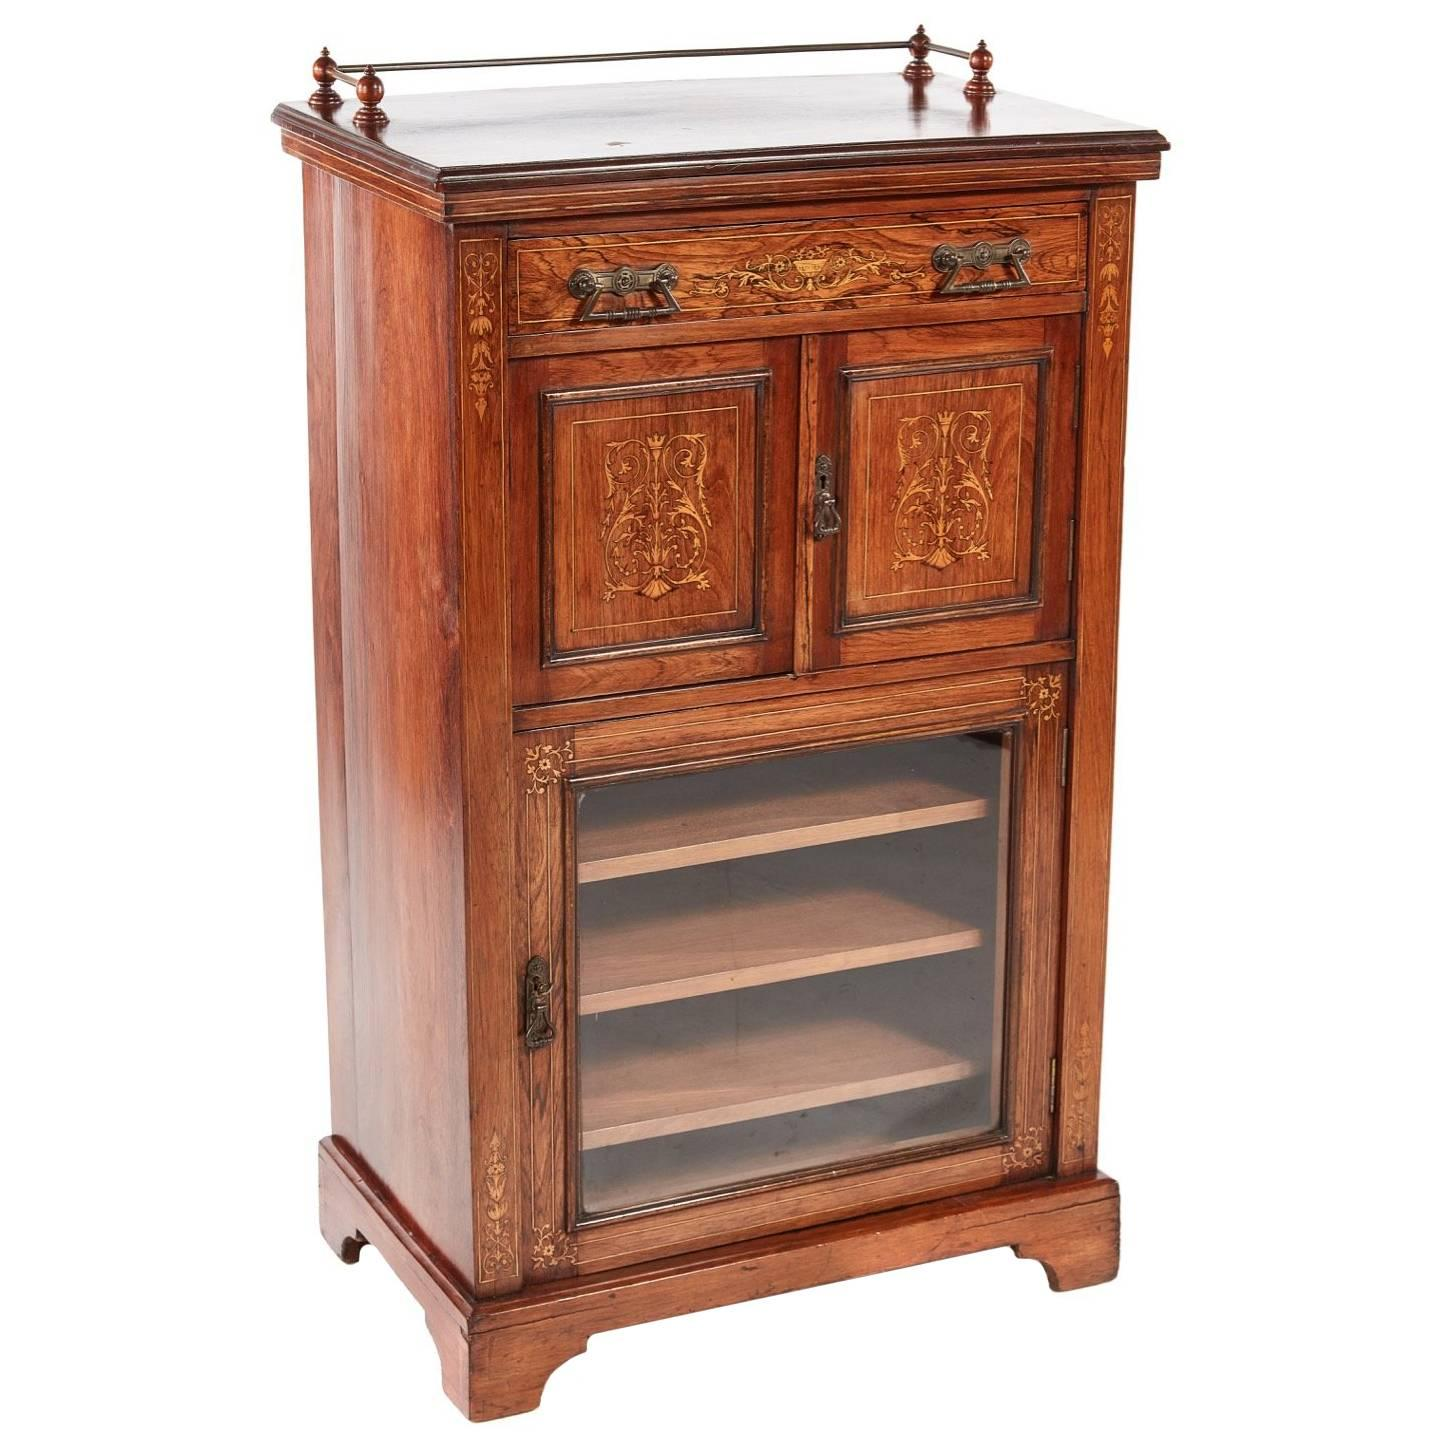 Gentil Good Quality Rosewood Inlaid Music Cabinet For Sale